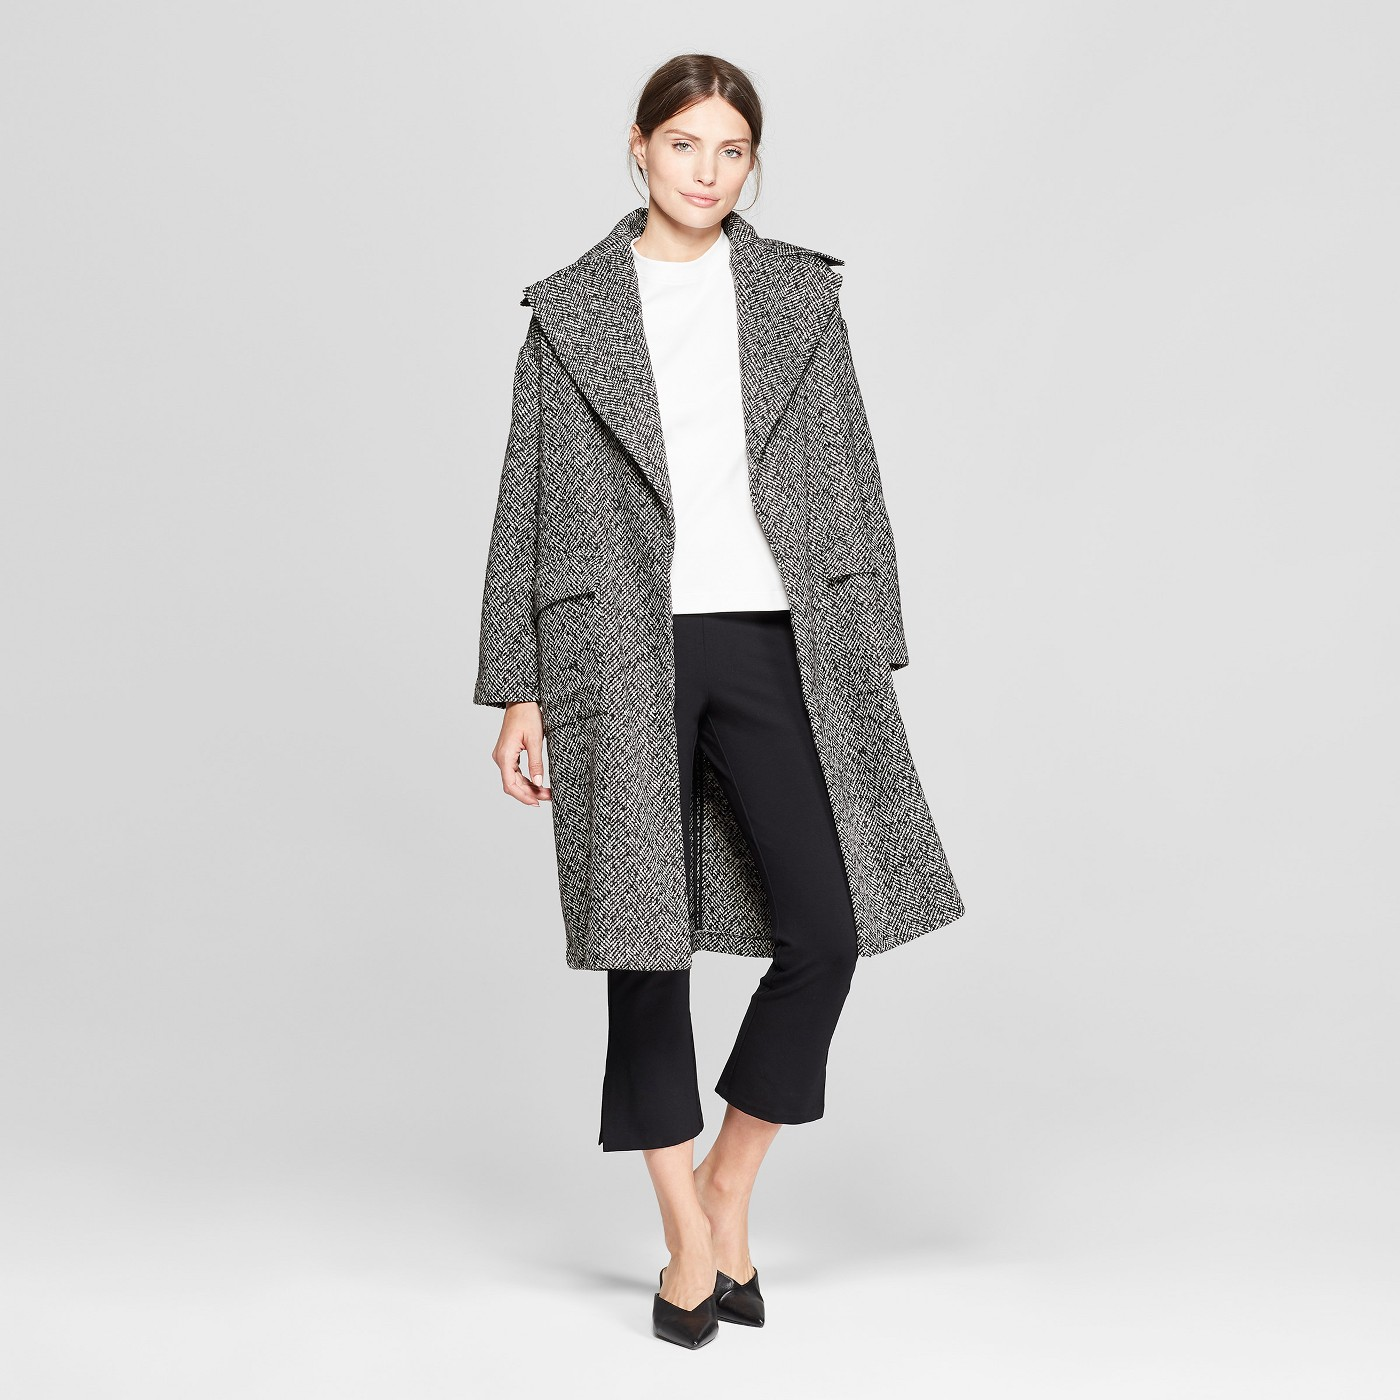 917246679 OMG, Target's New Collection Looks Straight Off the Runway - FabFitFun